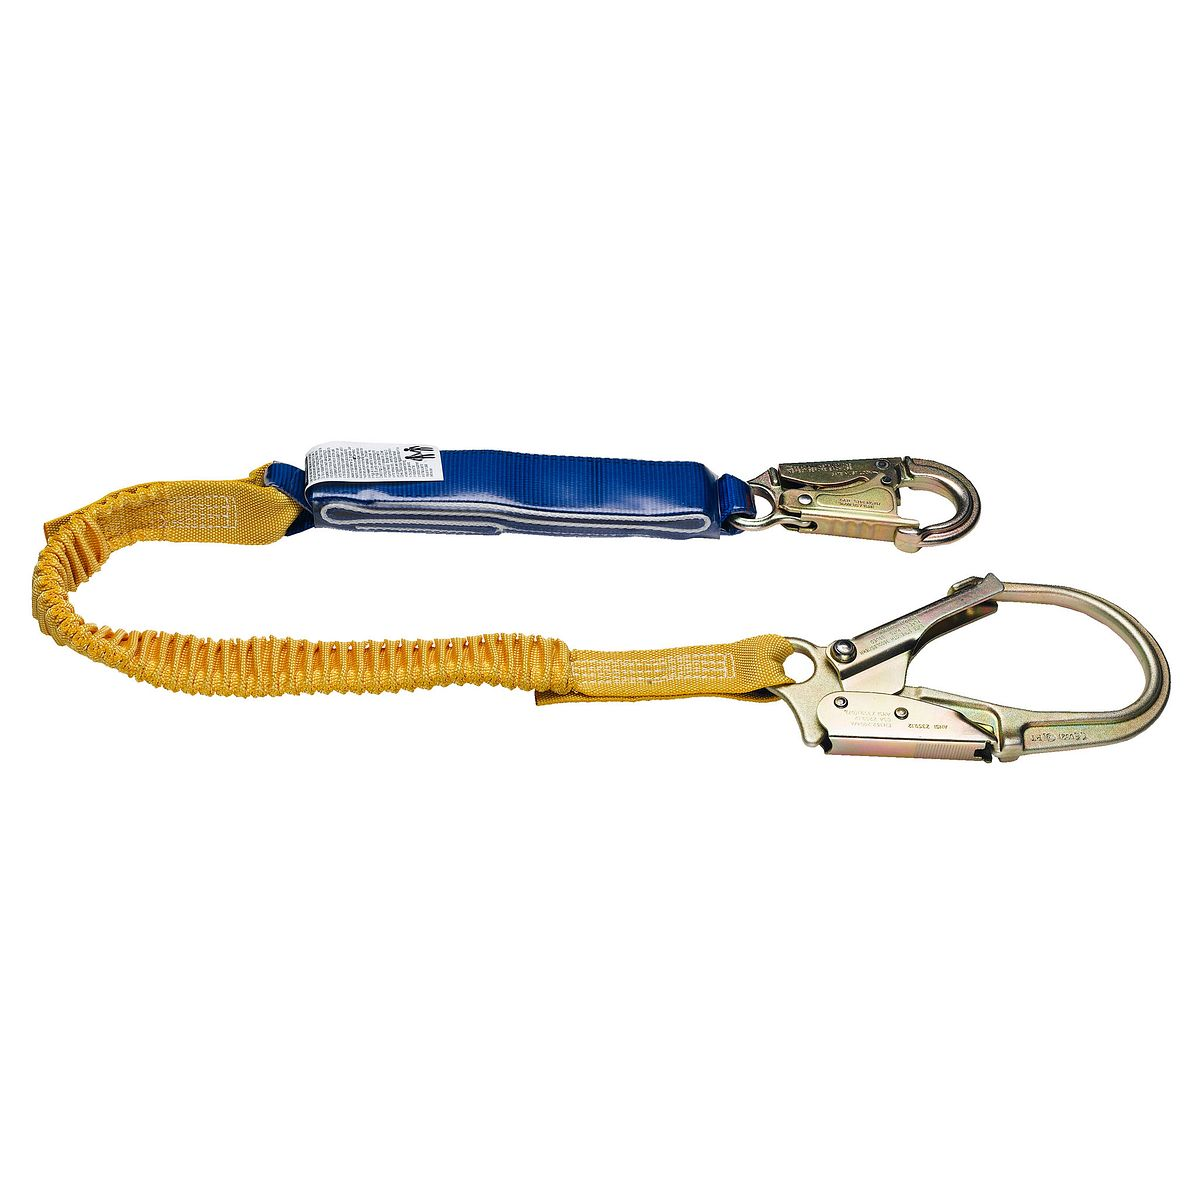 6FT DECOIL STRETCH SINGLE LEG LANYARD (DCELL SHOCK PACK,